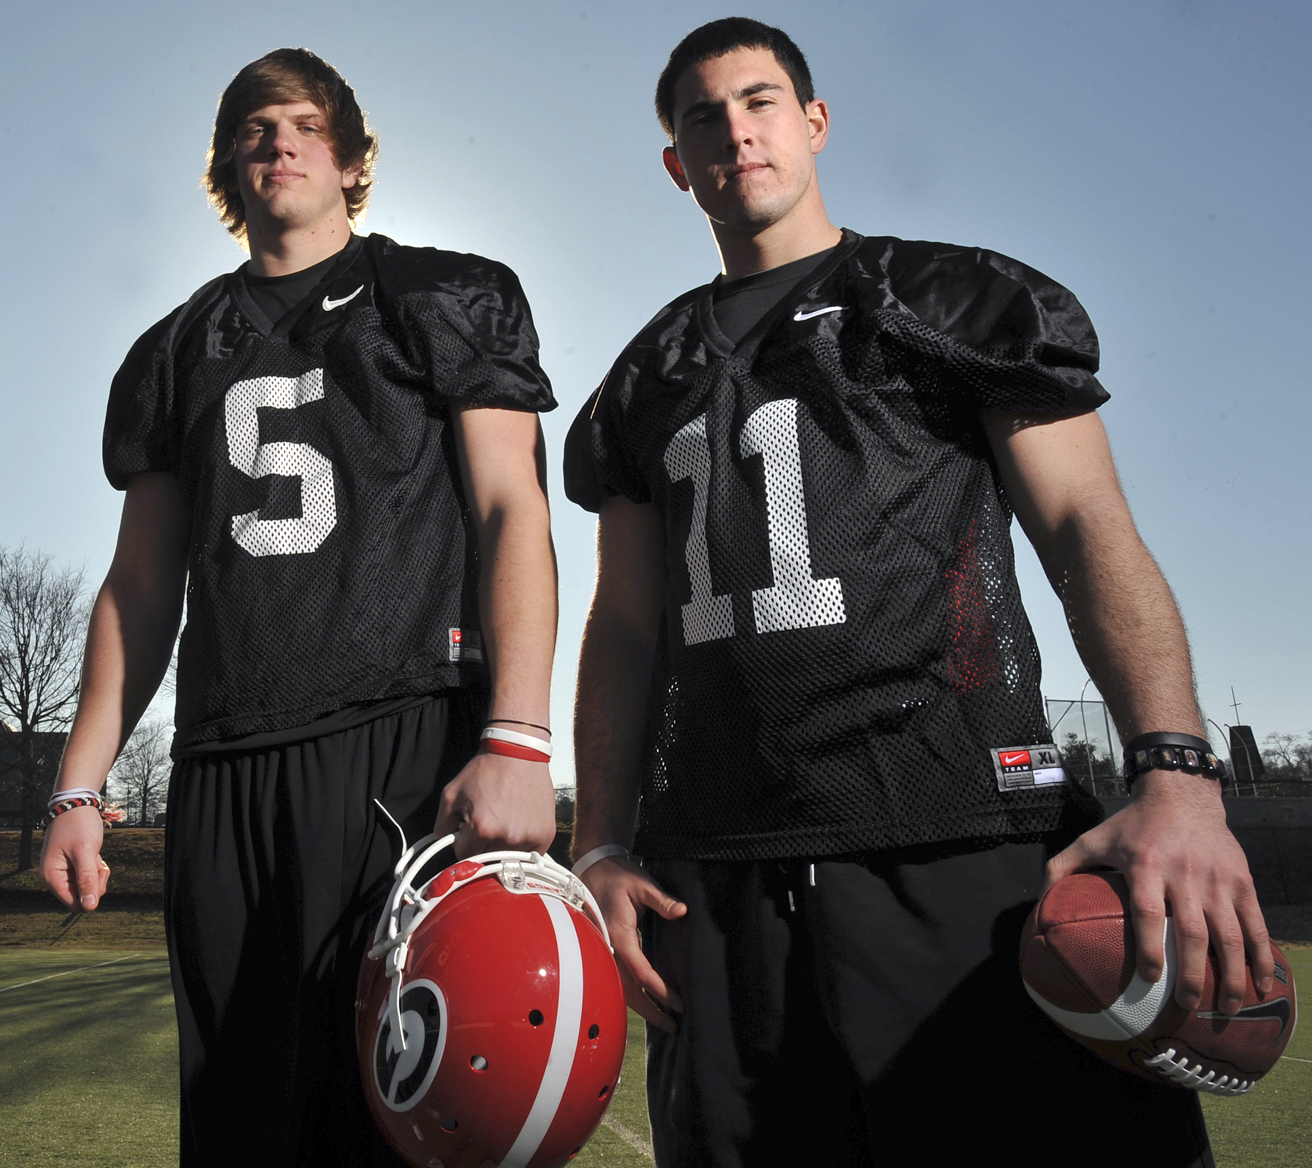 In this Feb. 26, 2010, file photo, Georgia quarterbacks Zach Mettenberger (5) and Aaron Murray (11) pose for a photo in Athens, Ga. Murray won the job, guided Georgia back to national prominence, and became the most prolific passer in school history. Mettenberger ran into legal troubles, was forced out of Athens, and landed as the starter for Southeastern Conference rival LSU. On Saturday, these former teammates will go against each other for the first time when Georgia hosts LSU